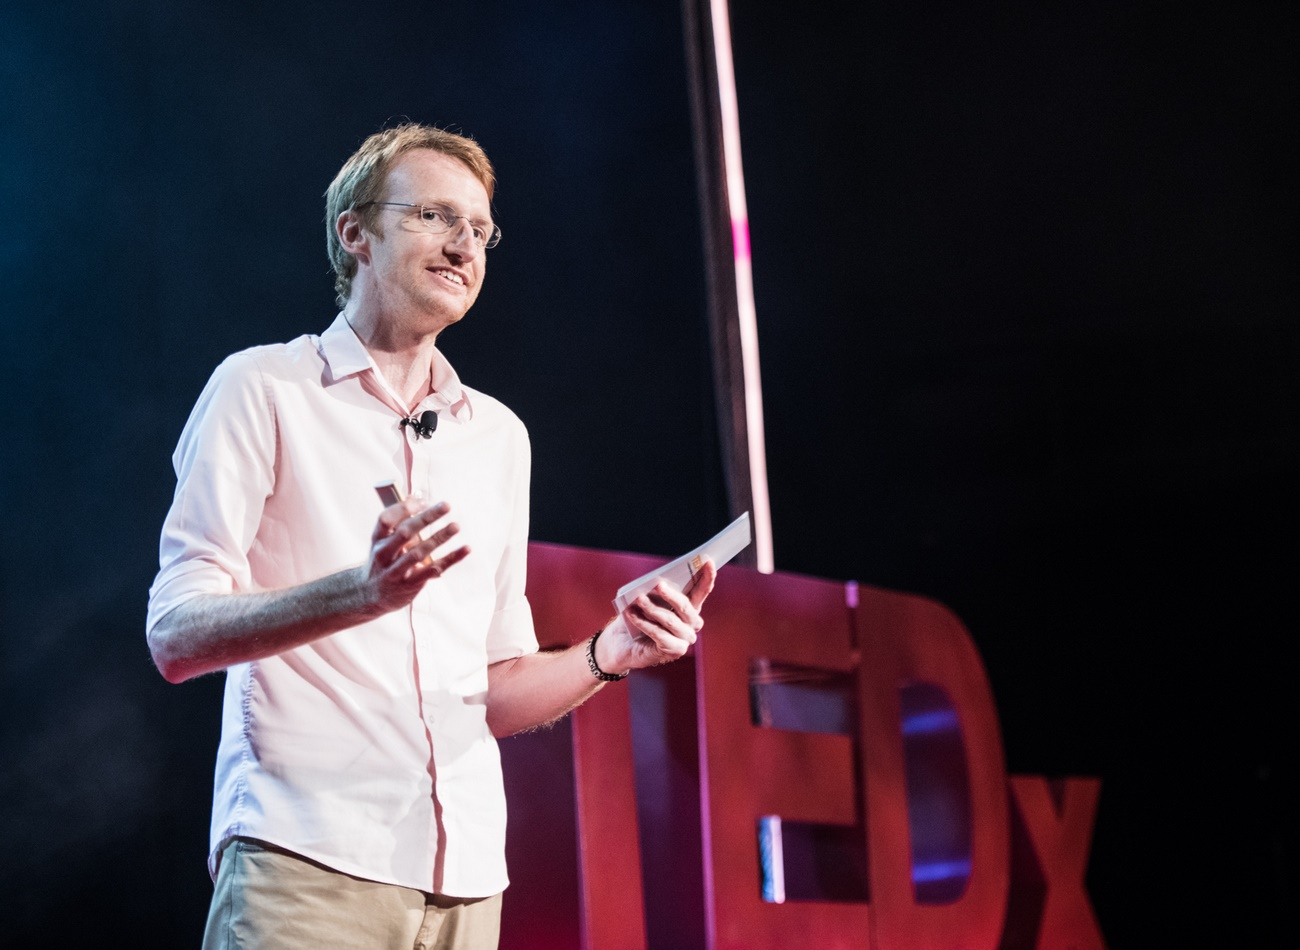 tom grundy hong kong hkfp tedx